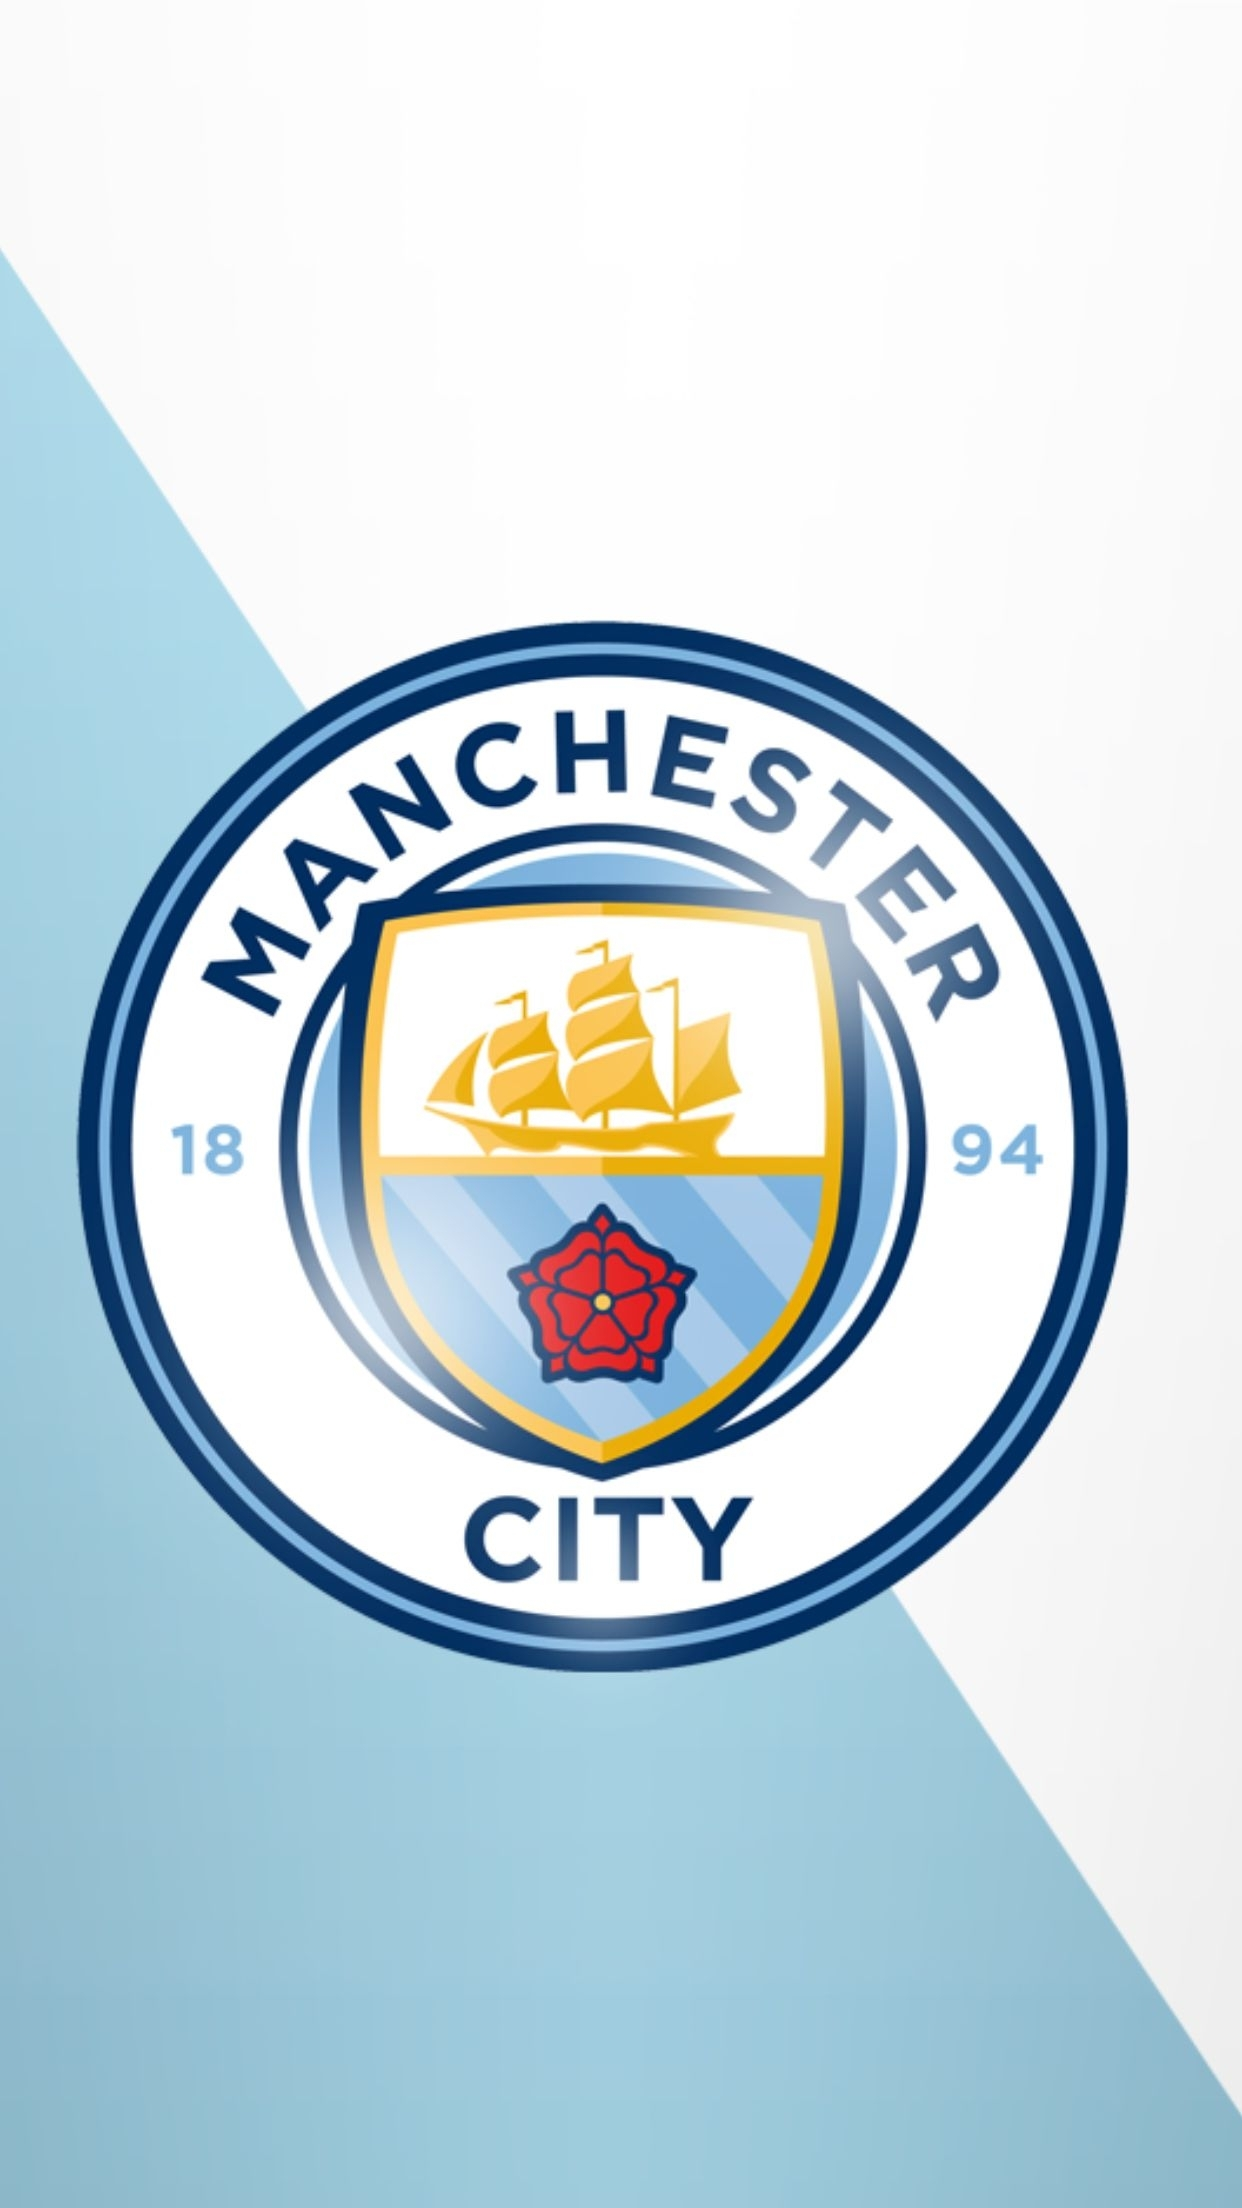 10 New Man City Wallpaper Iphone FULL HD 1920×1080 For PC Background